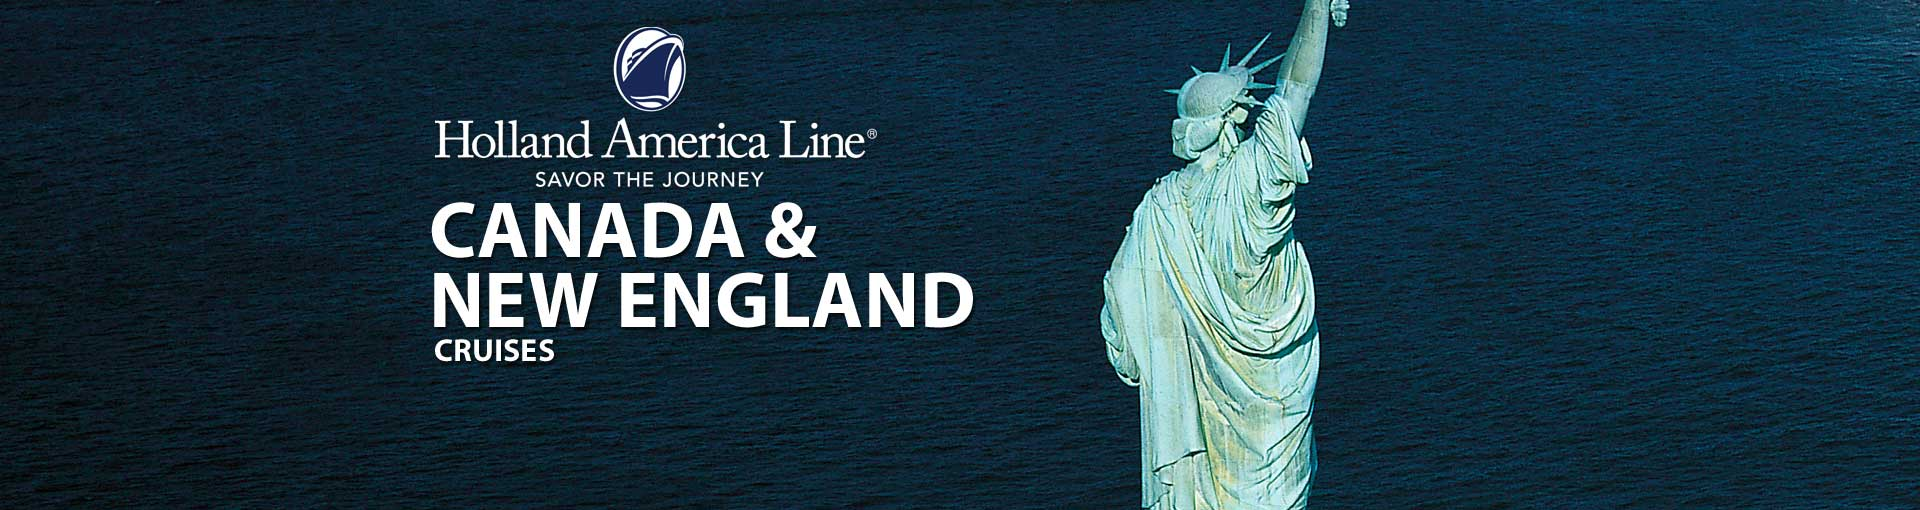 Holland America Canada New England Cruises